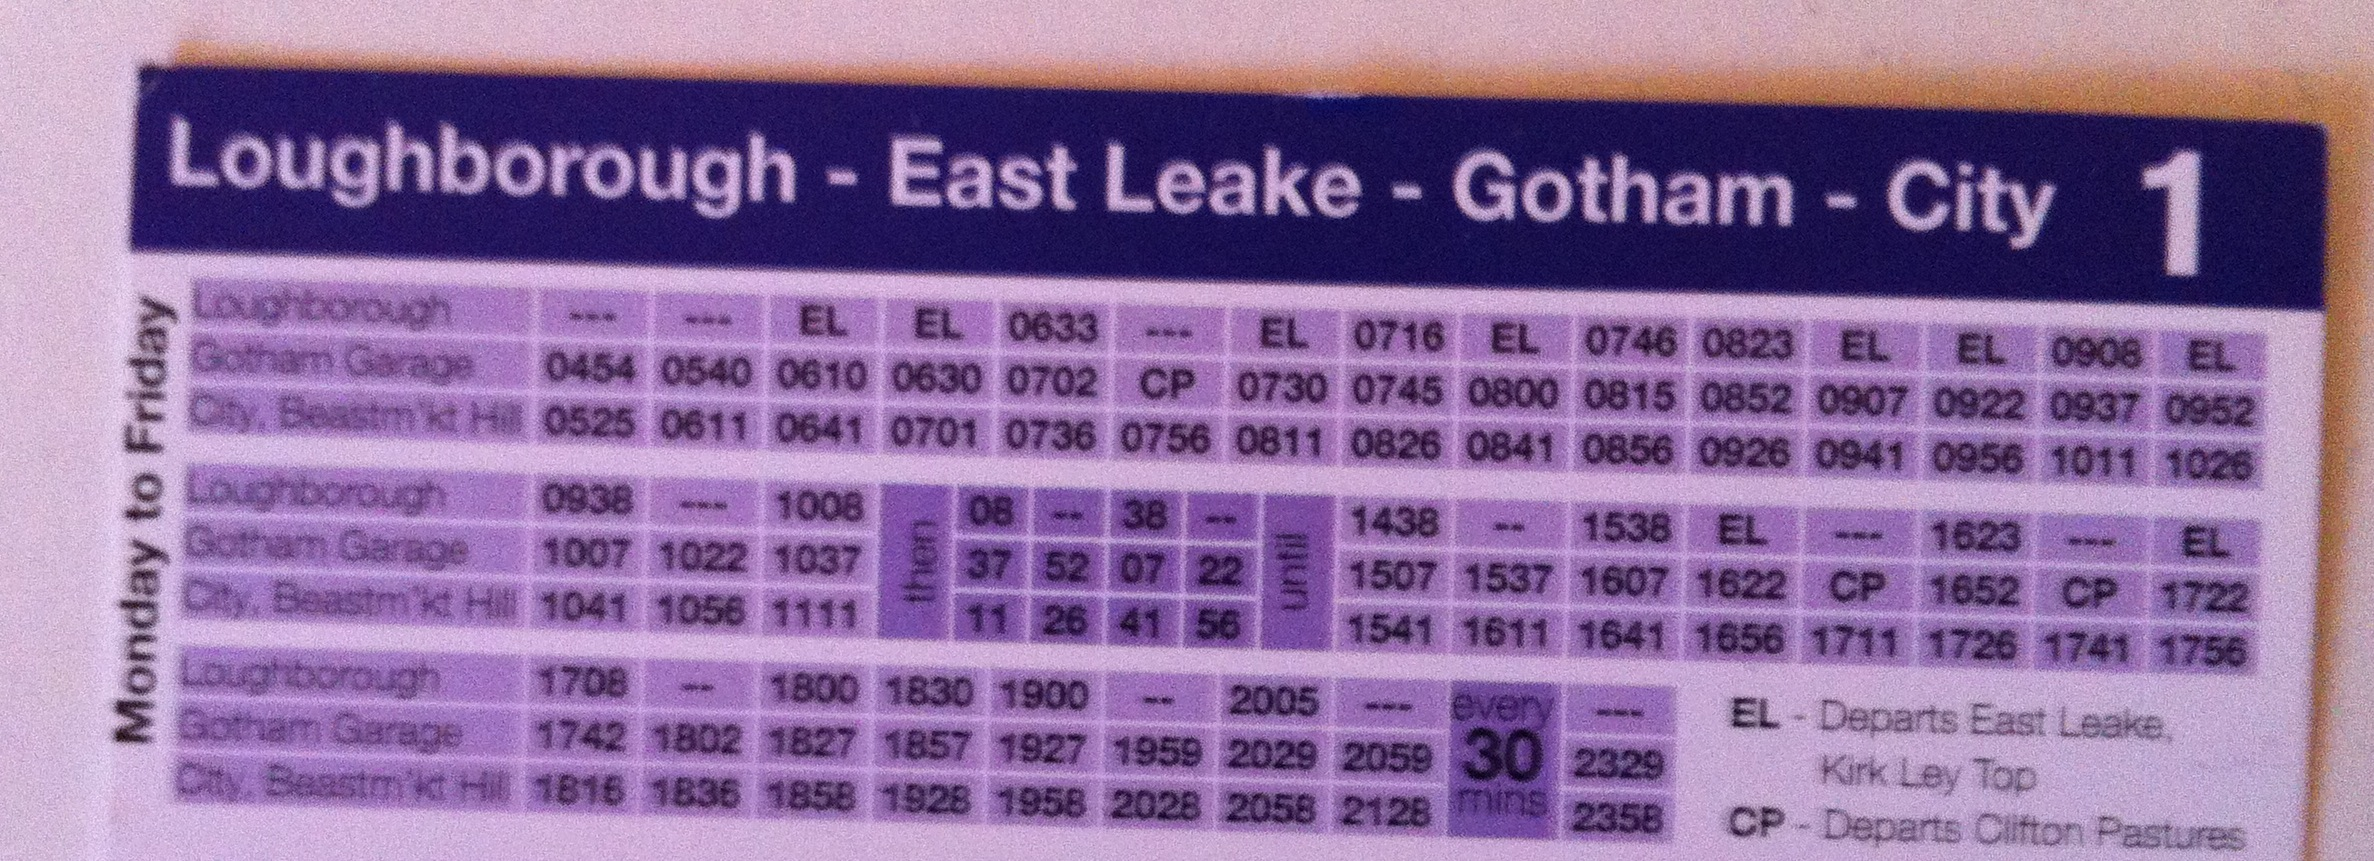 Bus Timetable: Loughborough - East Leake - Gotham - City